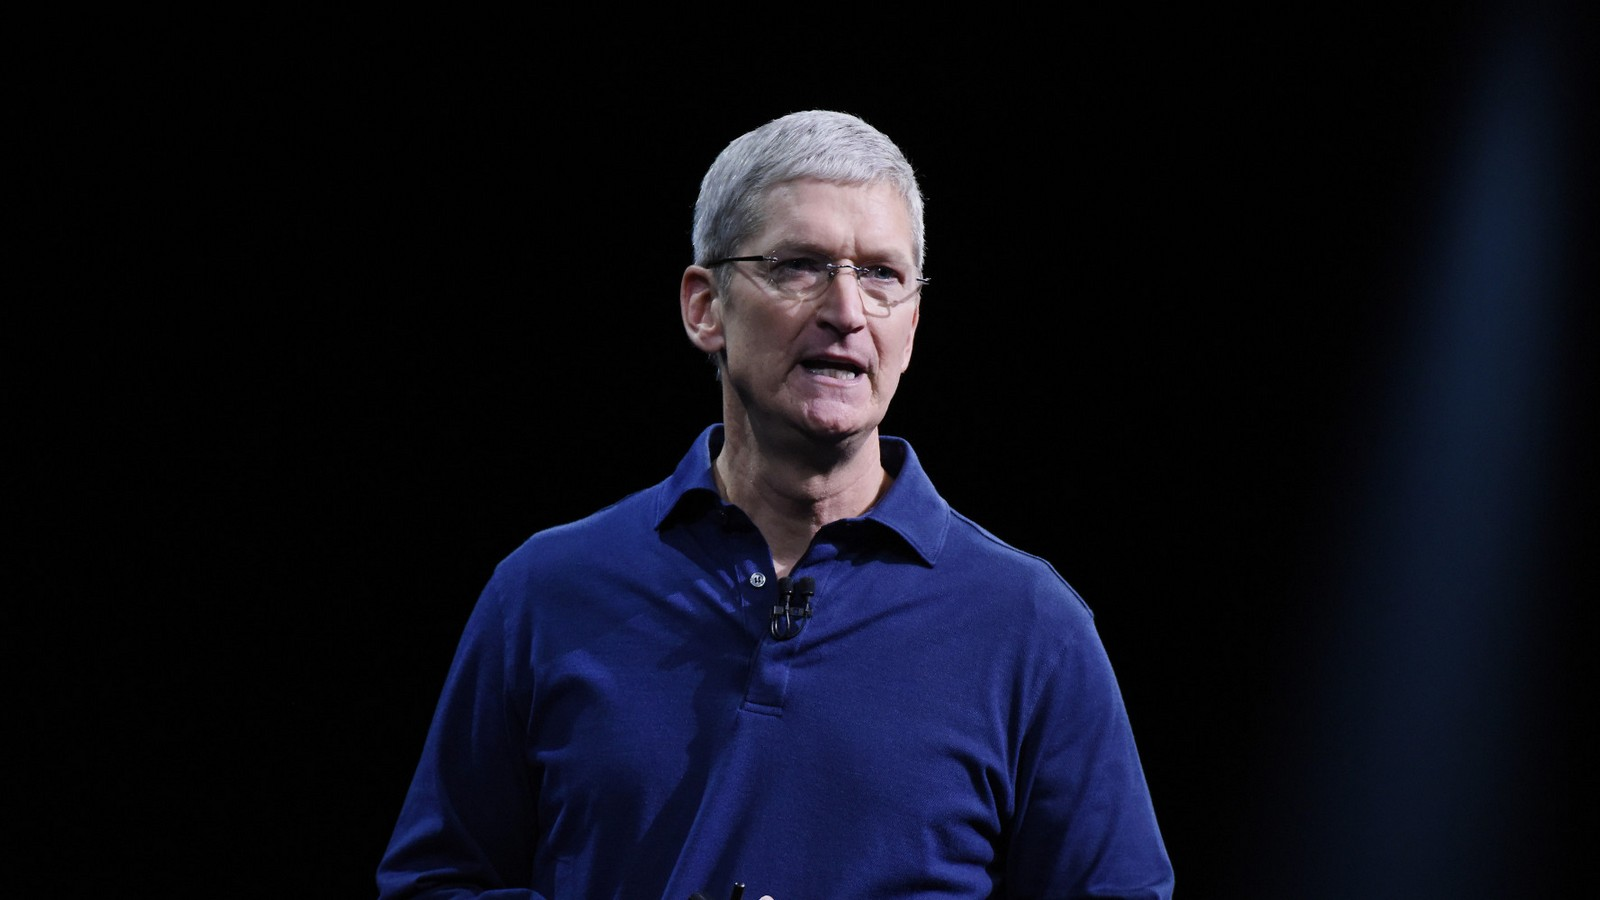 Tim cook has promised to update the lineup of desktop Macs